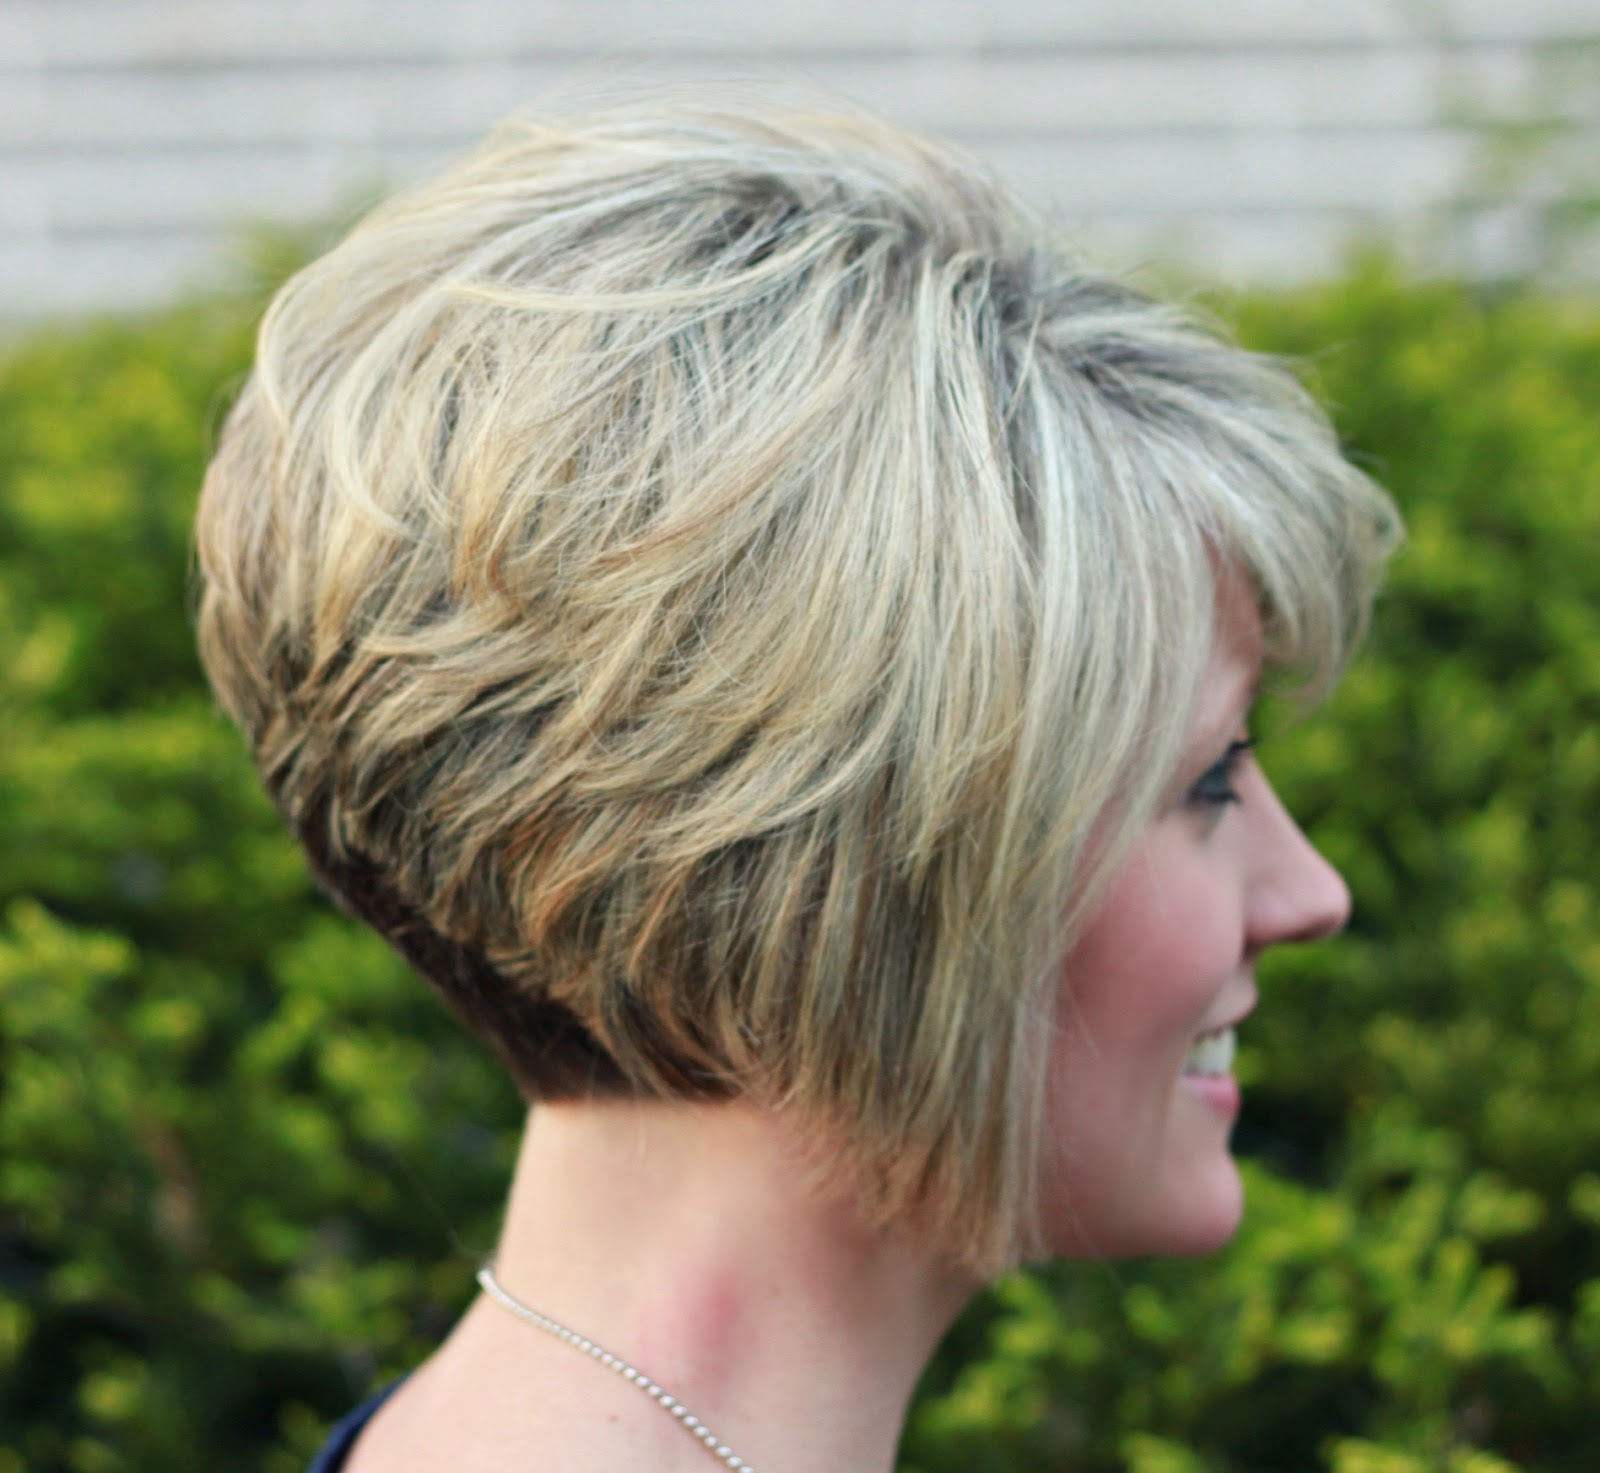 Miraculous 1000 Images About Hair Styles On Pinterest Bobs Inverted Bob Hairstyles For Women Draintrainus